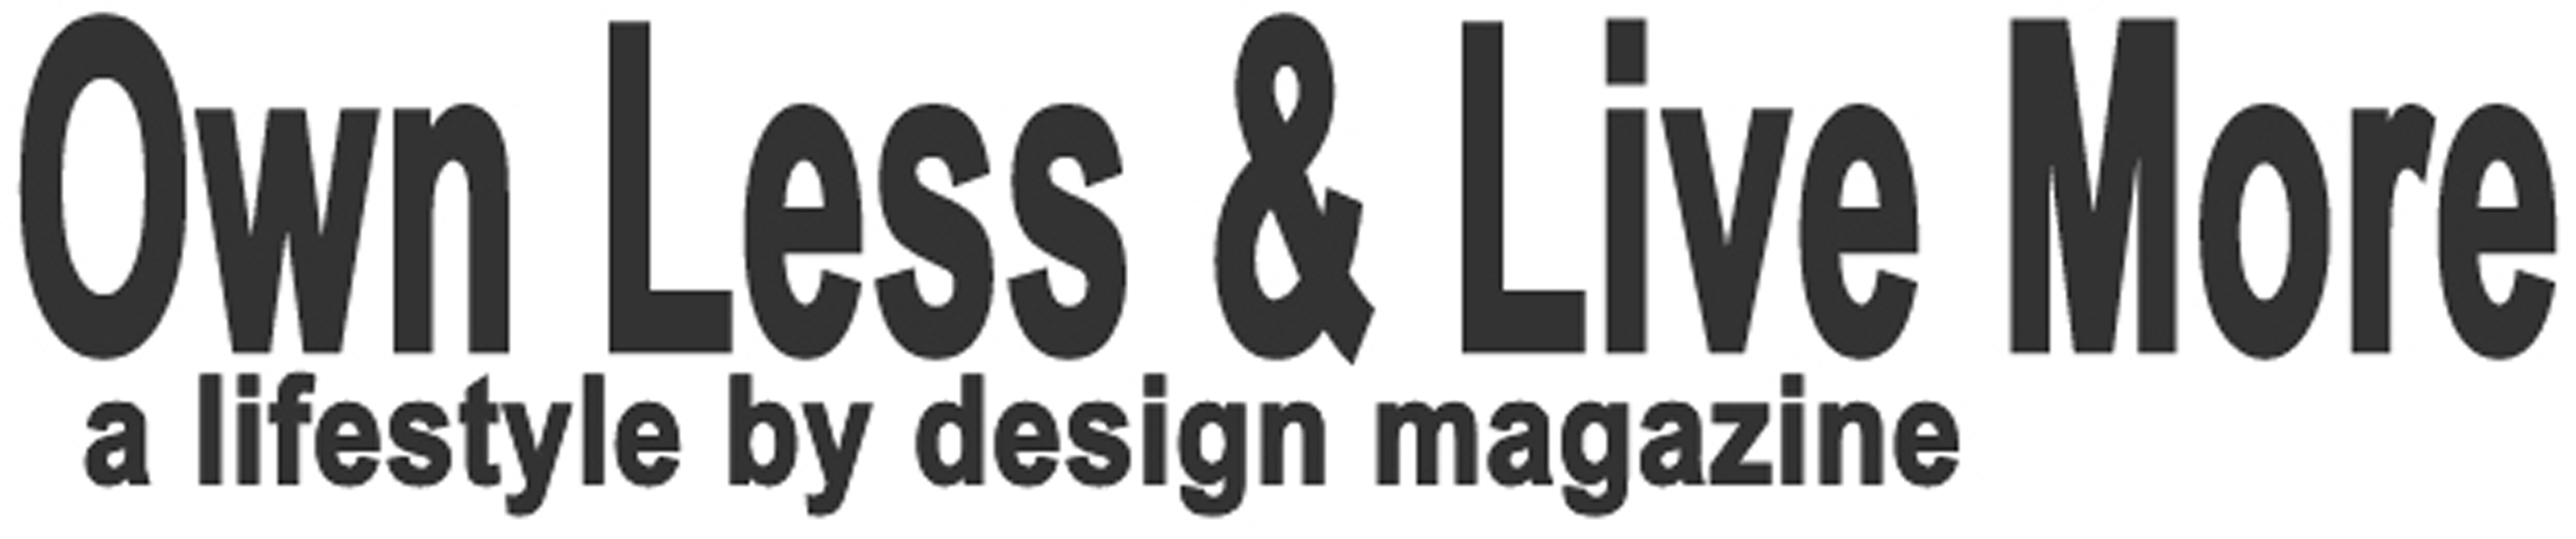 Own Less & Live More - a lifestyle by design